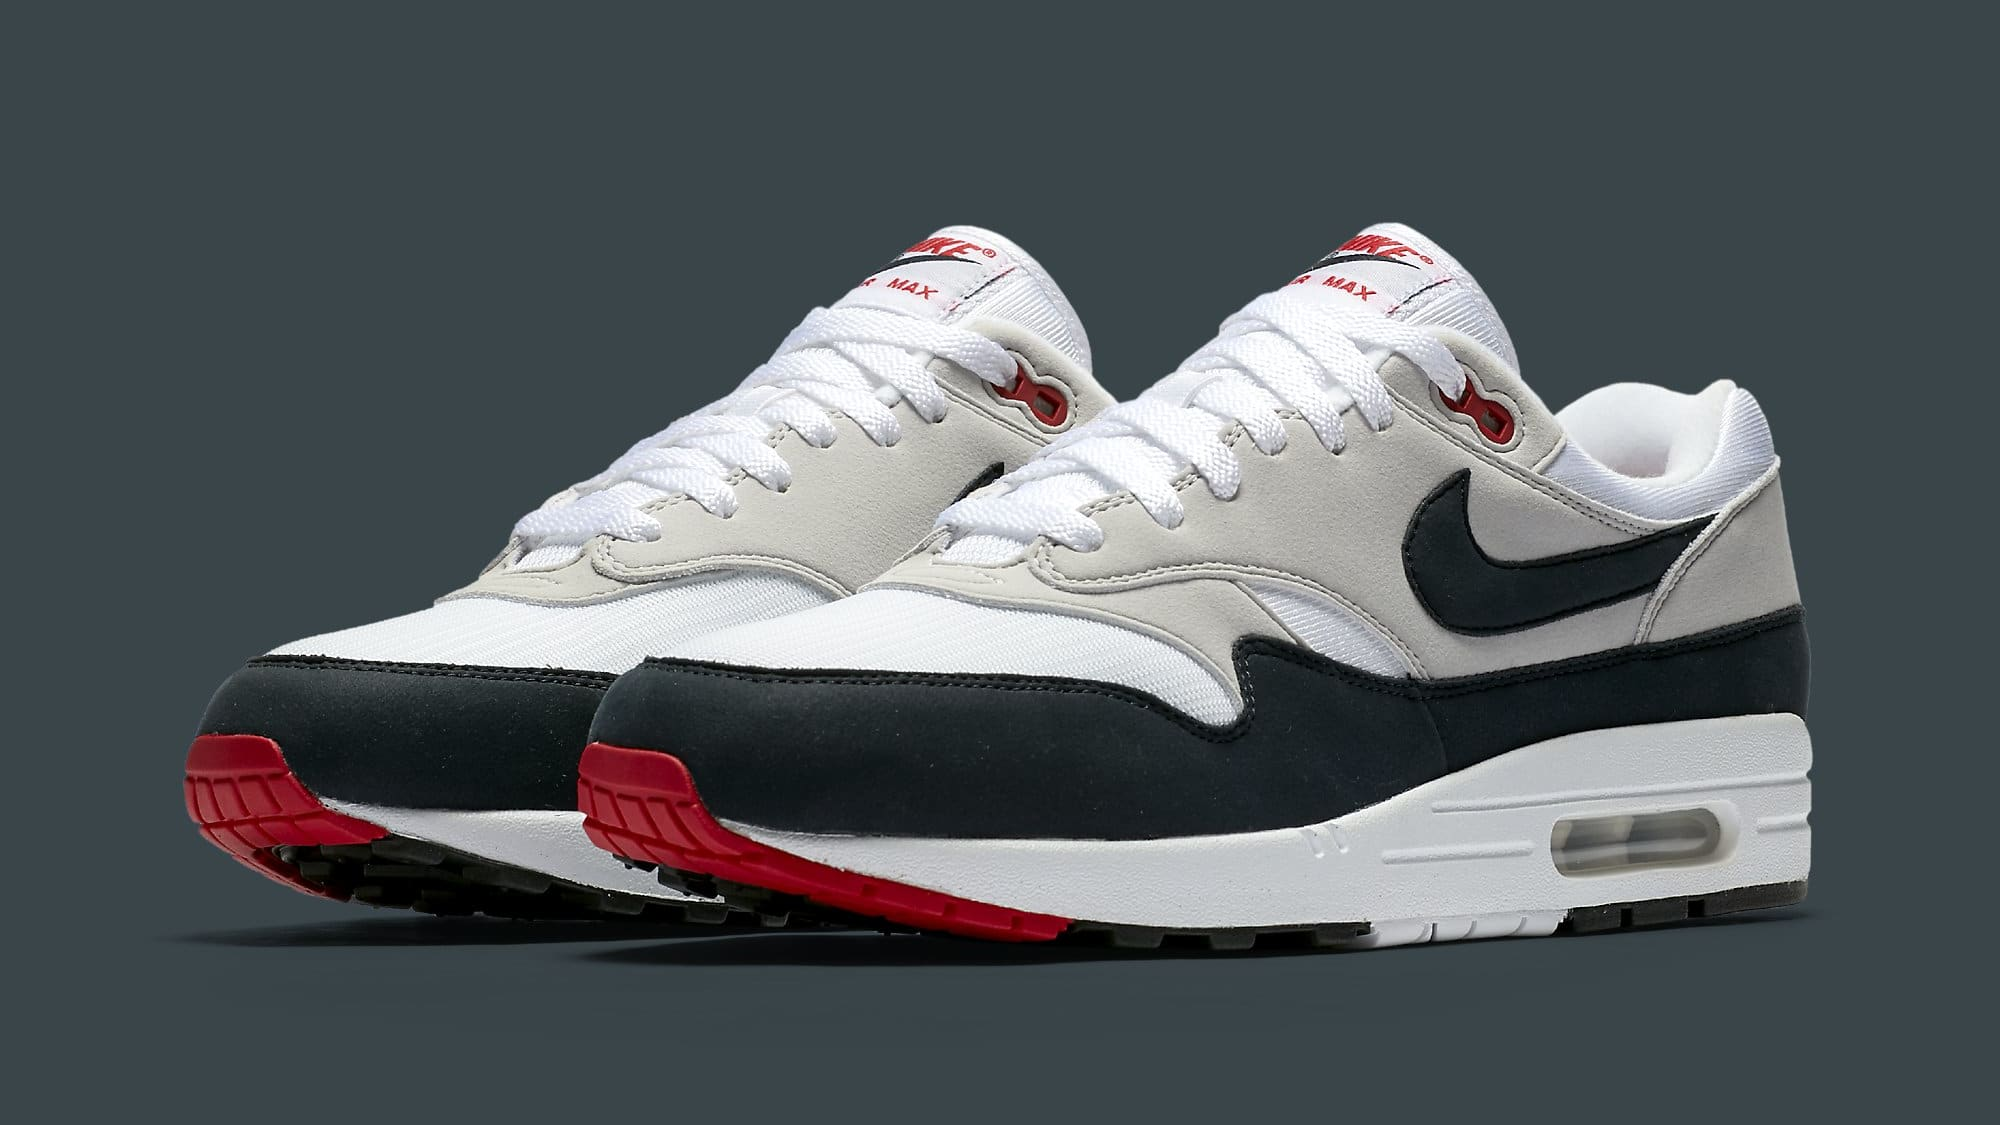 8569338b31 ... OG Anniversary Obsidian Nike Air Max 1 Obsidian Release Date Sole  Collector ...